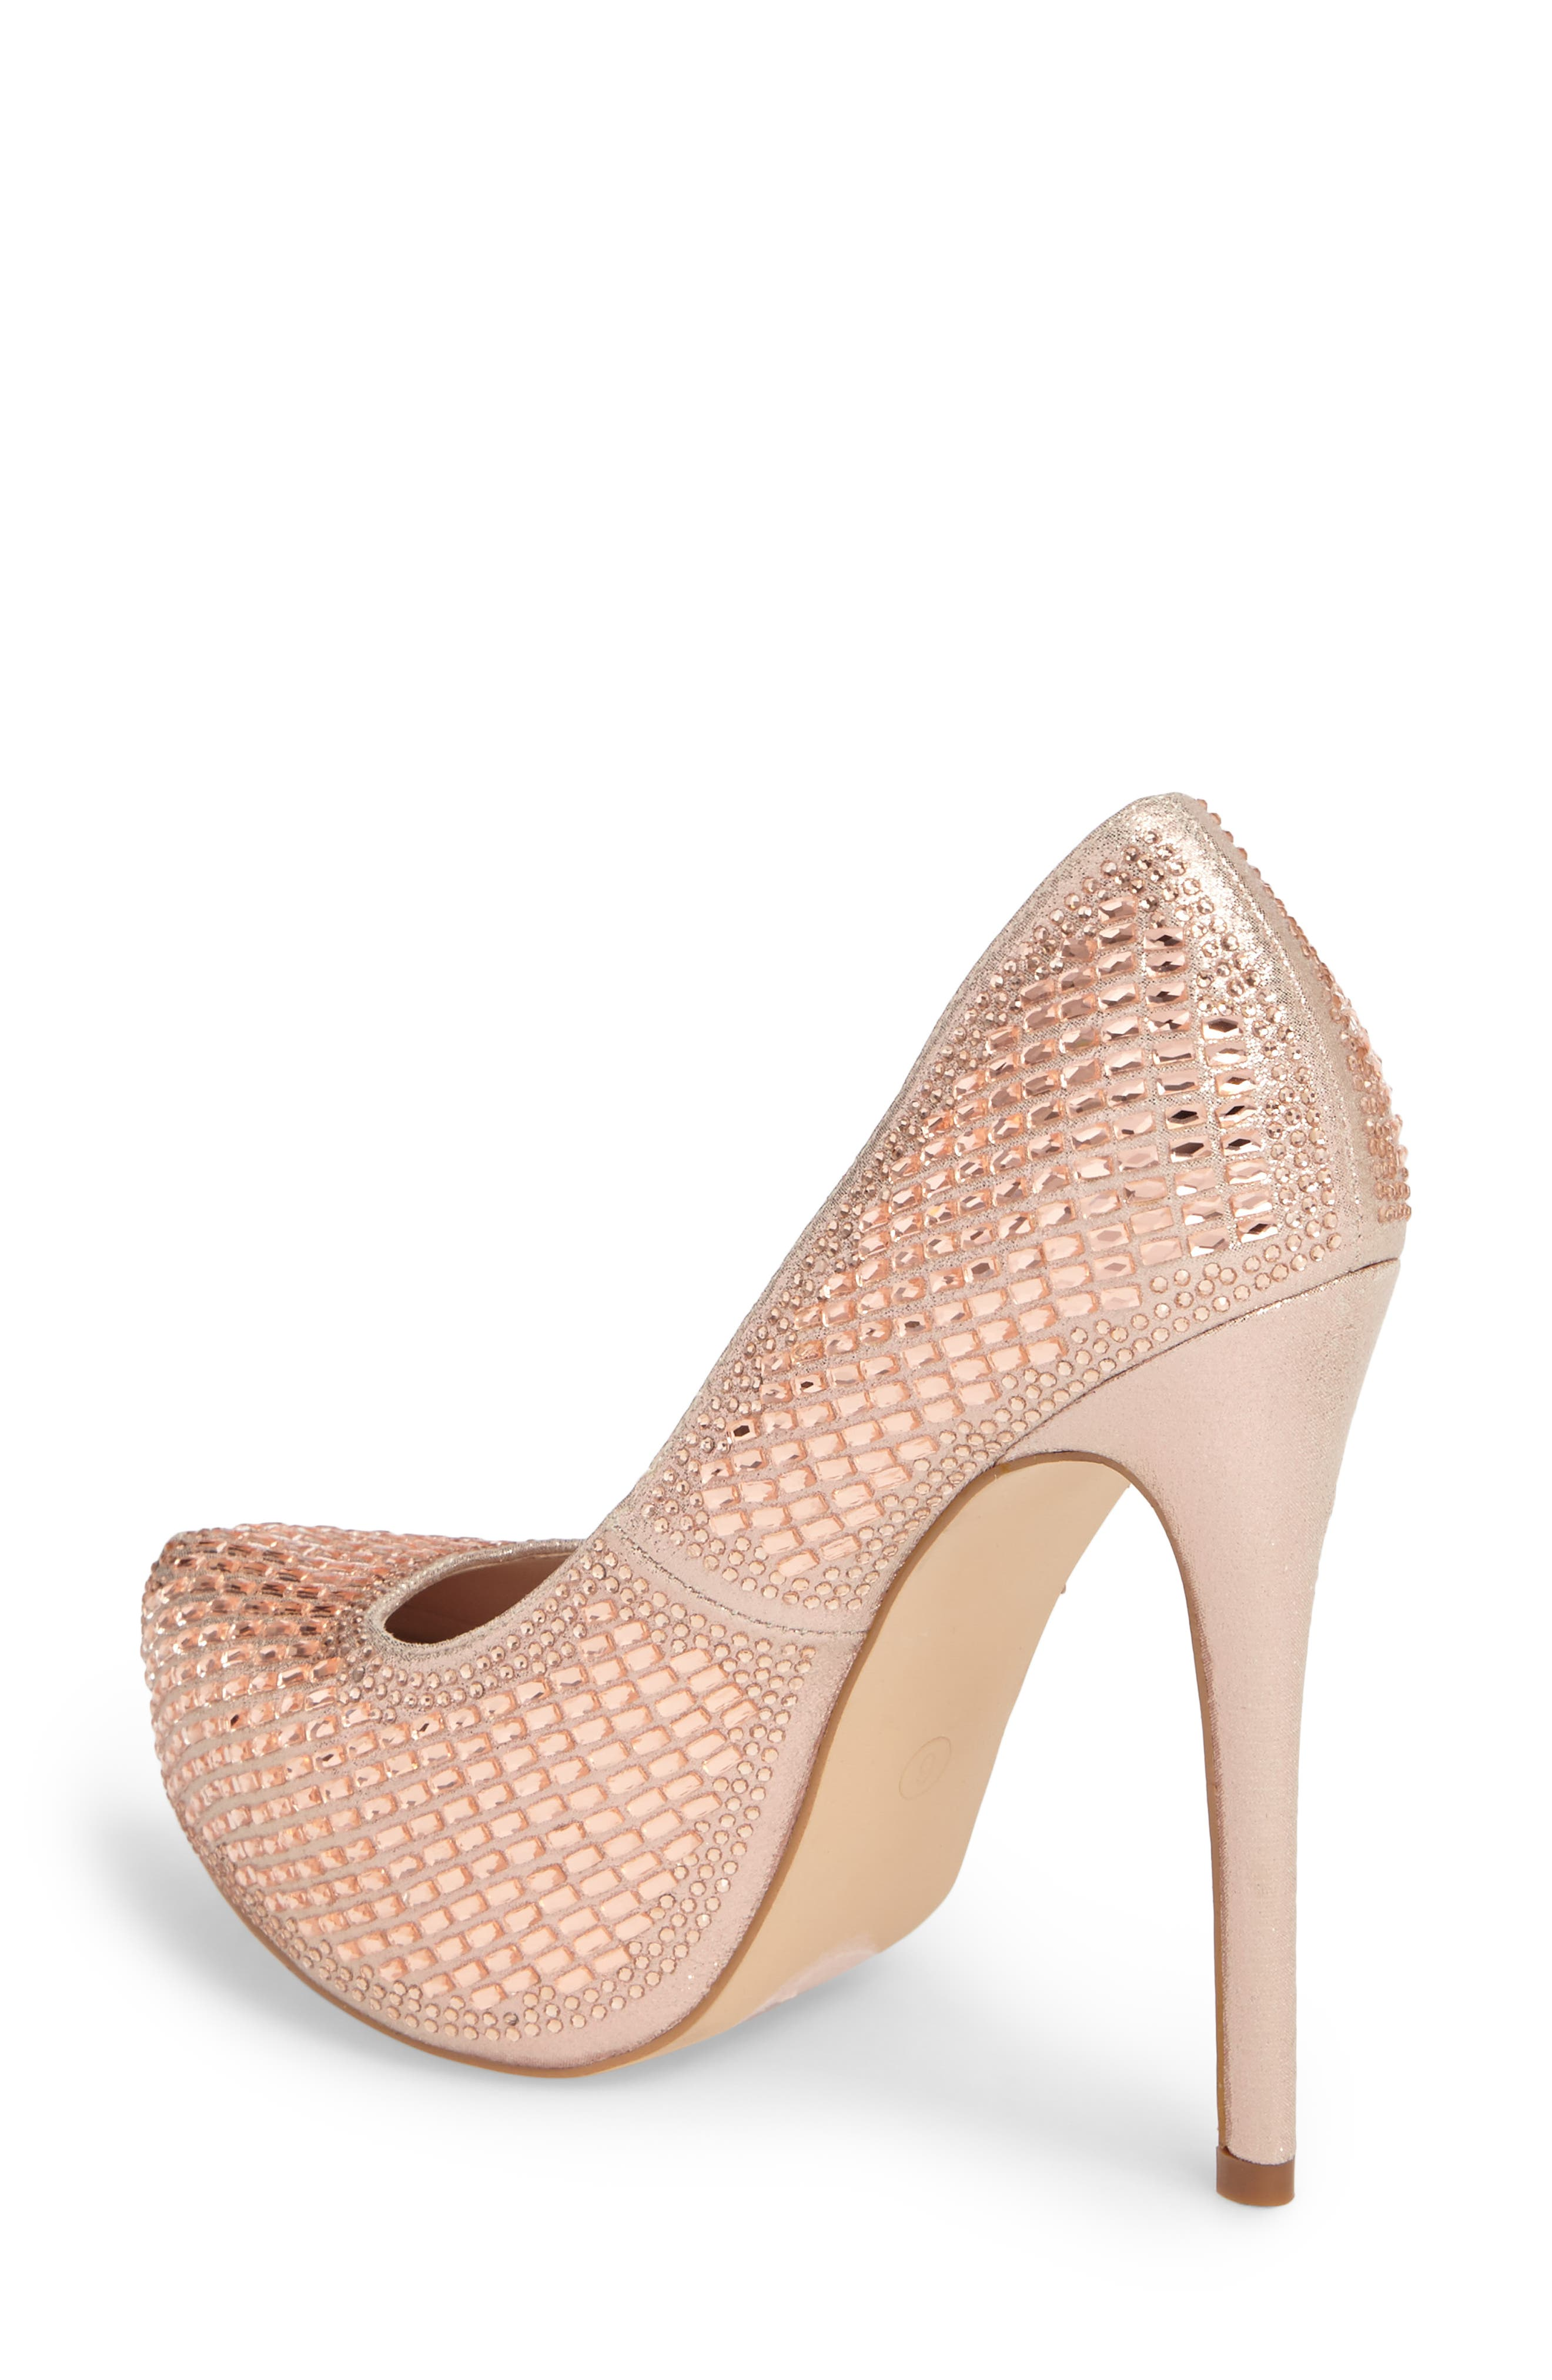 Vanna 5 Platform Pump,                             Alternate thumbnail 2, color,                             ROSE GOLD